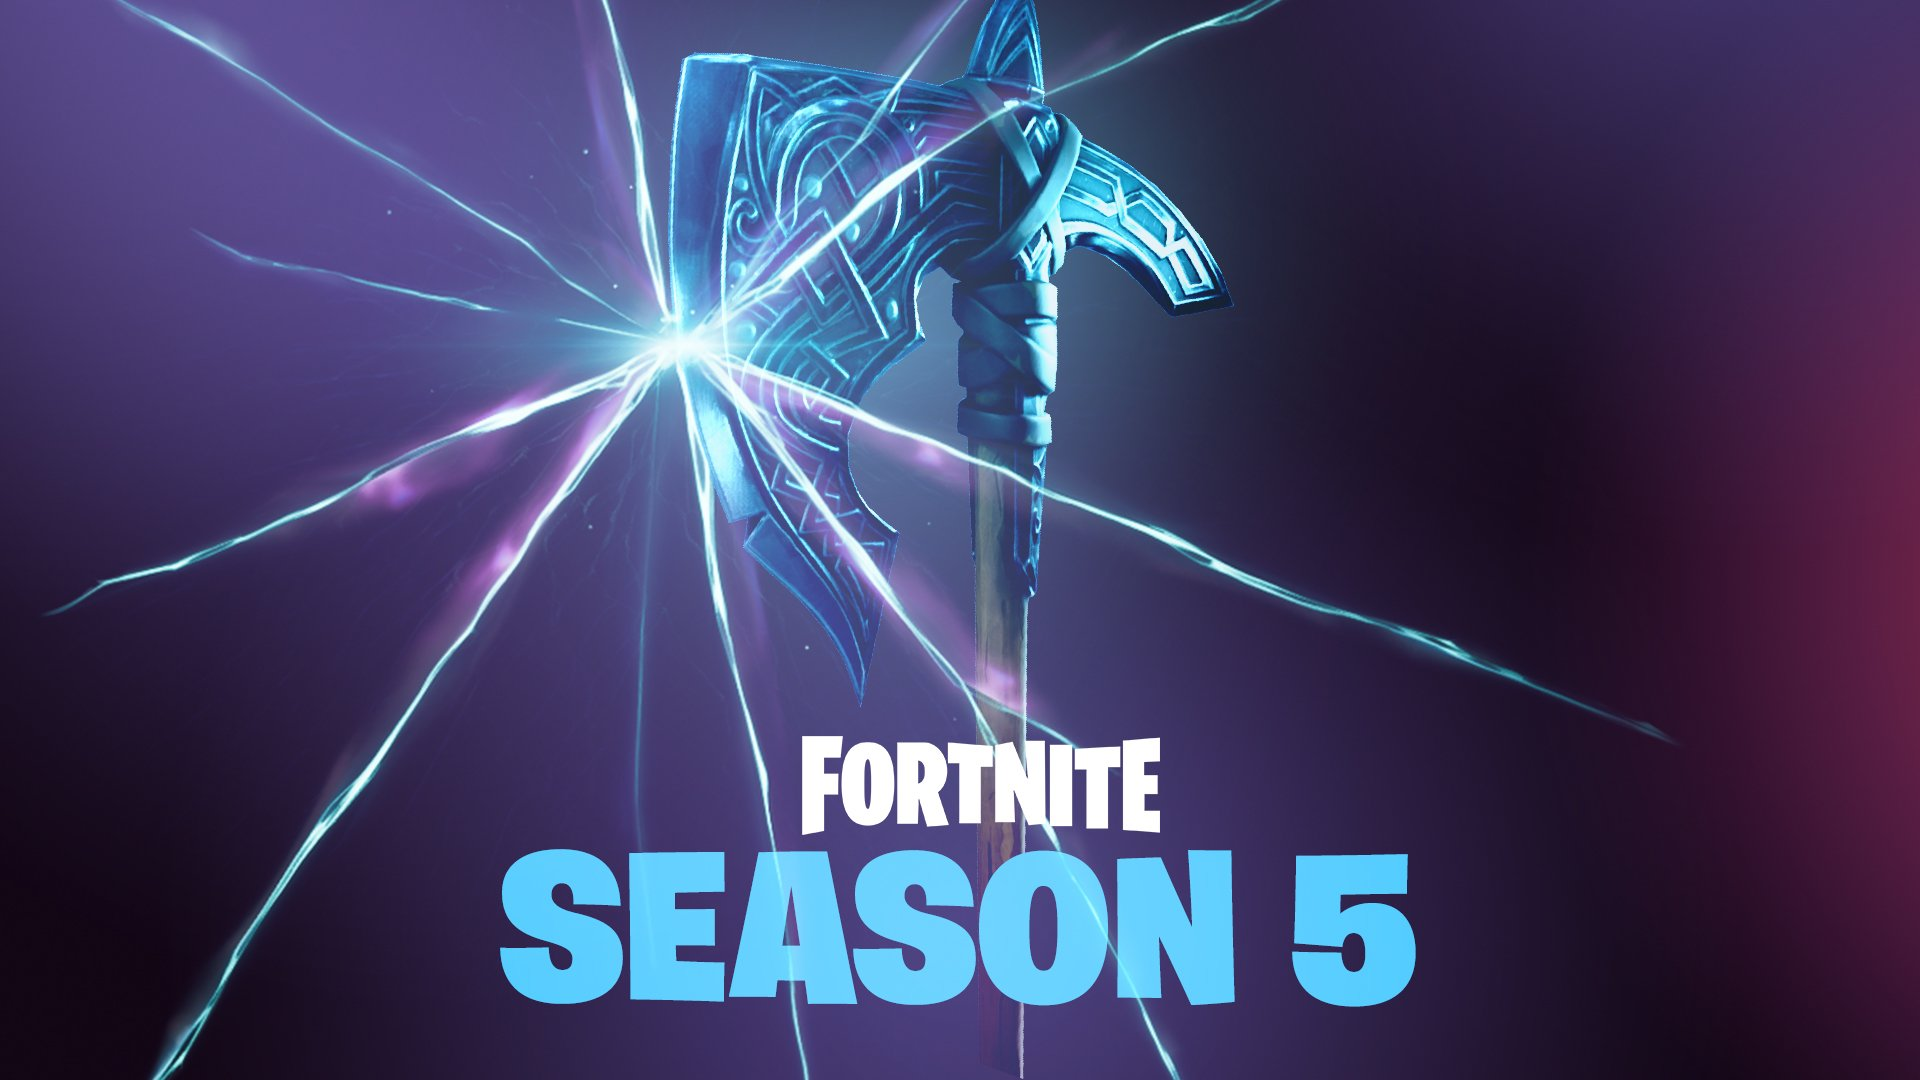 Fortnite Undergoes Downtime as Season 5 Prepares to Launch